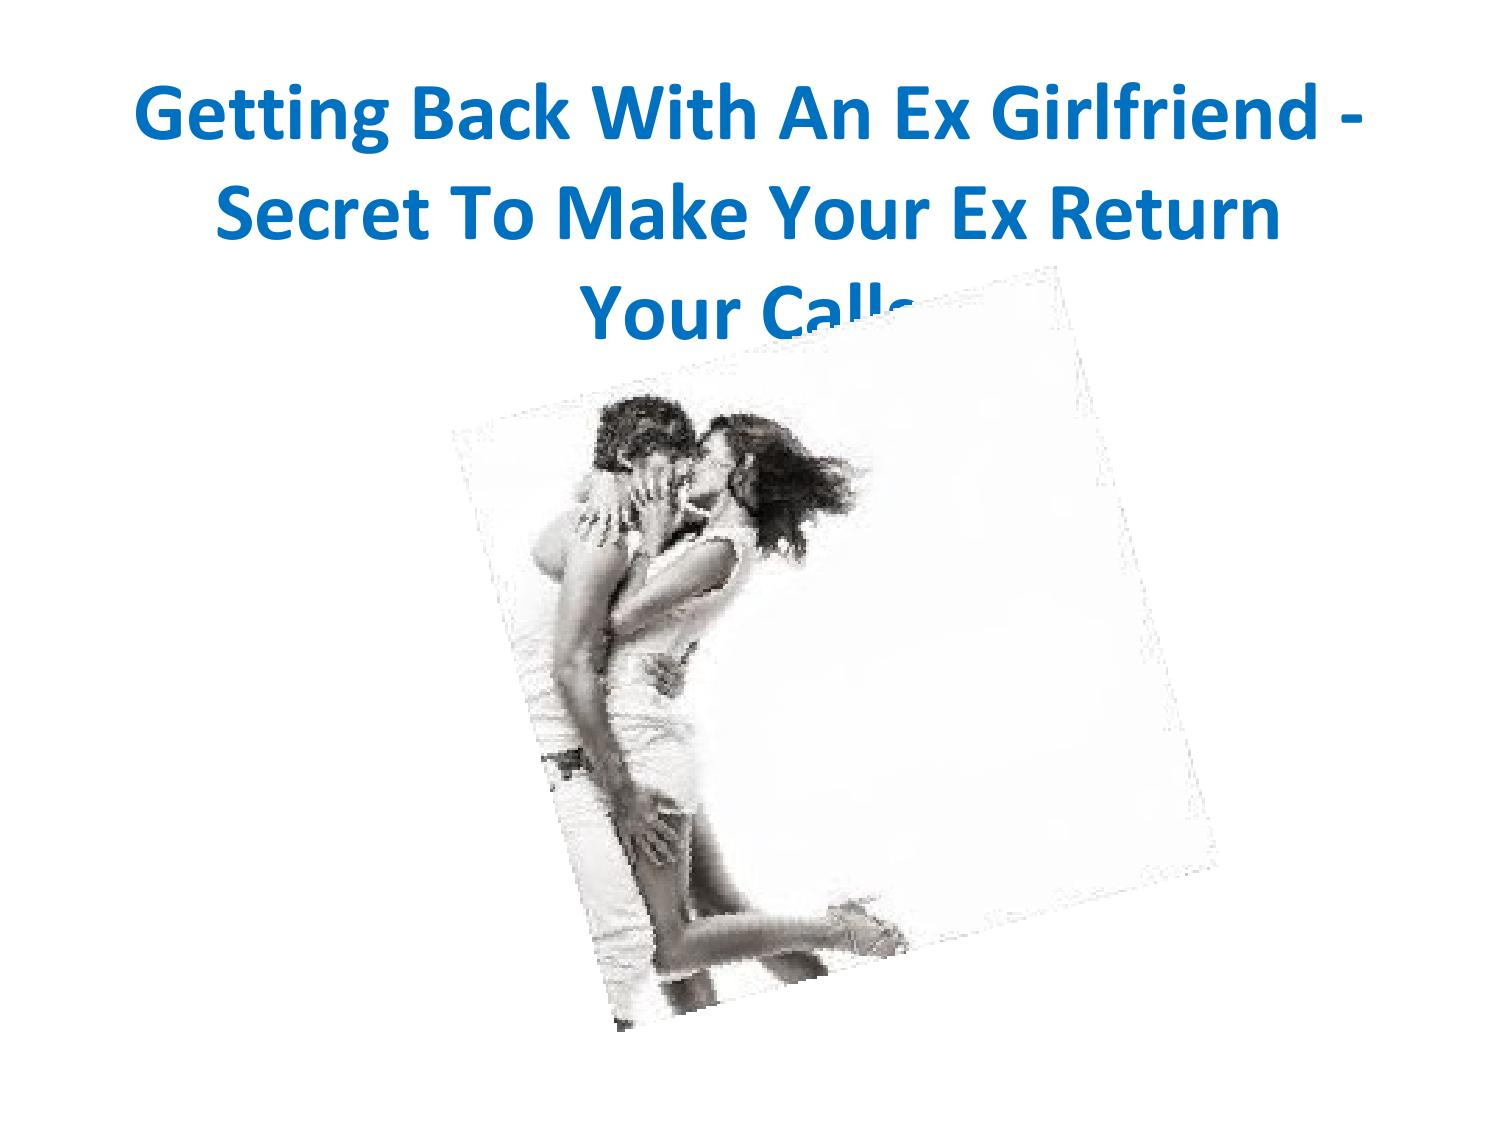 Getting Back With An Ex Girlfriend - Secret To Make Your Ex Return